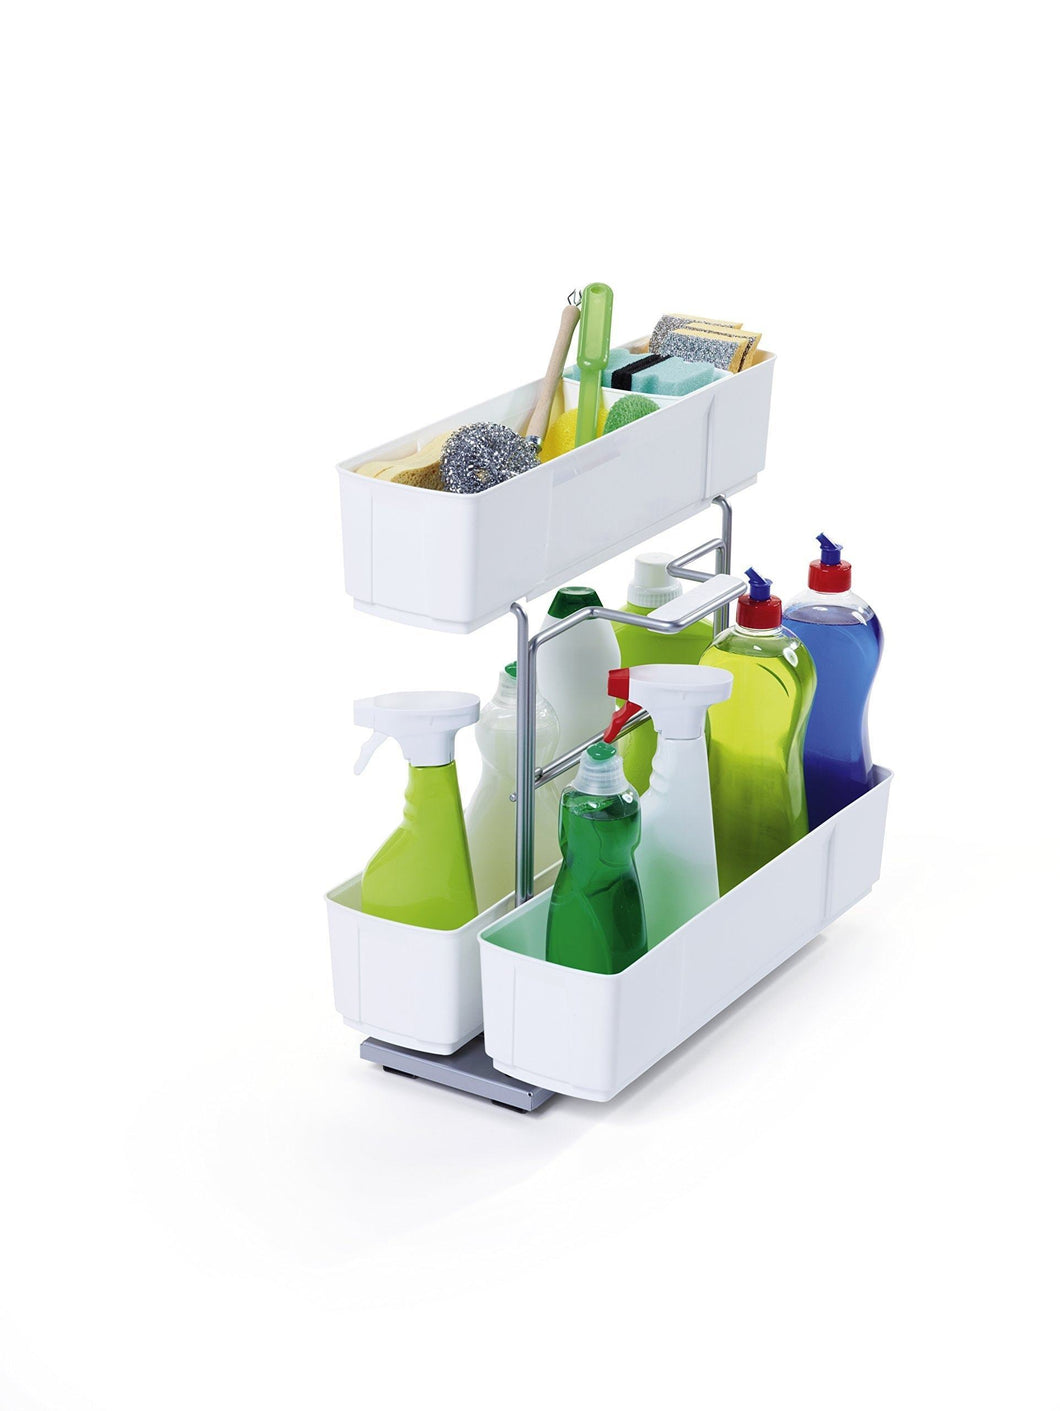 CleaningAGENT Under Sink Organizer | Chrome Steel and White | Sliding Pull-Out Base Cabinet Storage | Removable Carrying Caddy | Dishwasher Safe | Easy Install